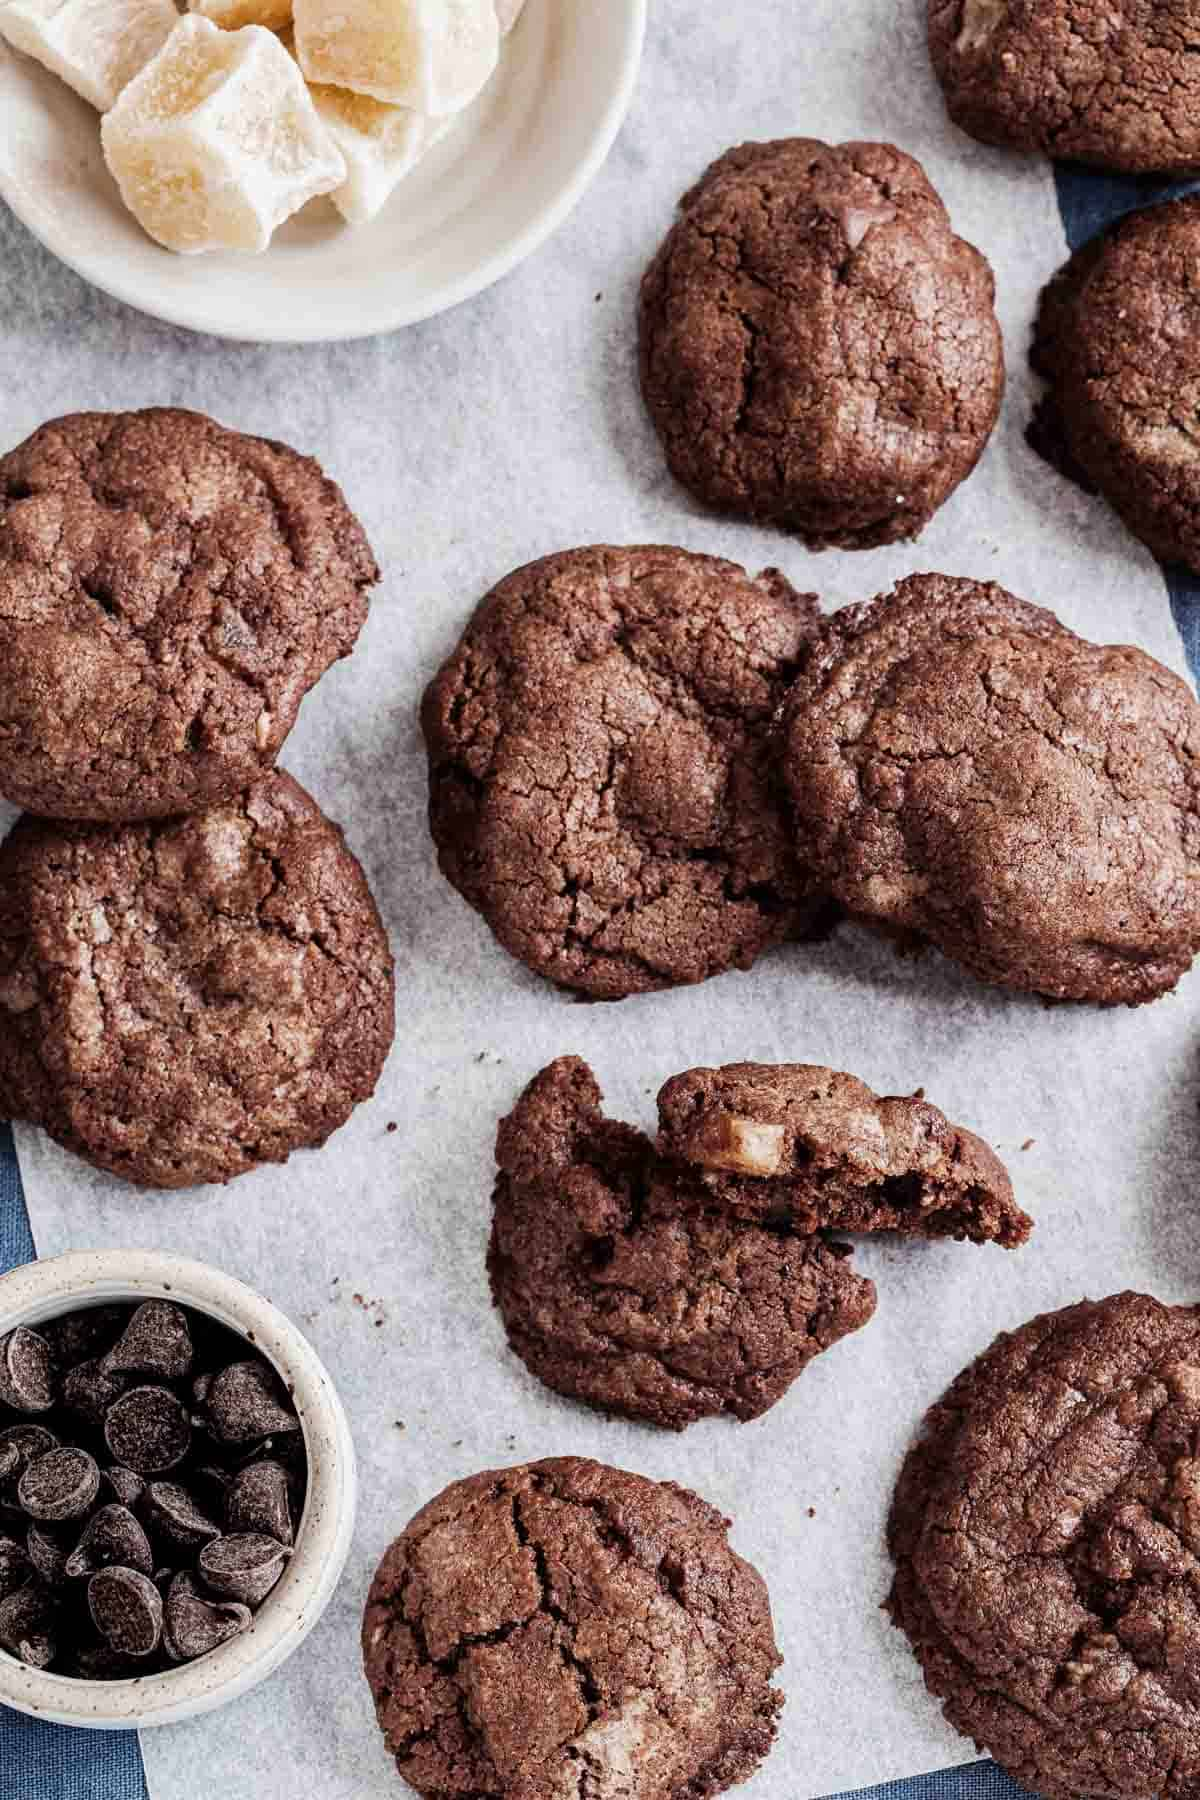 Chocolate ginger cookies on parchment paper.